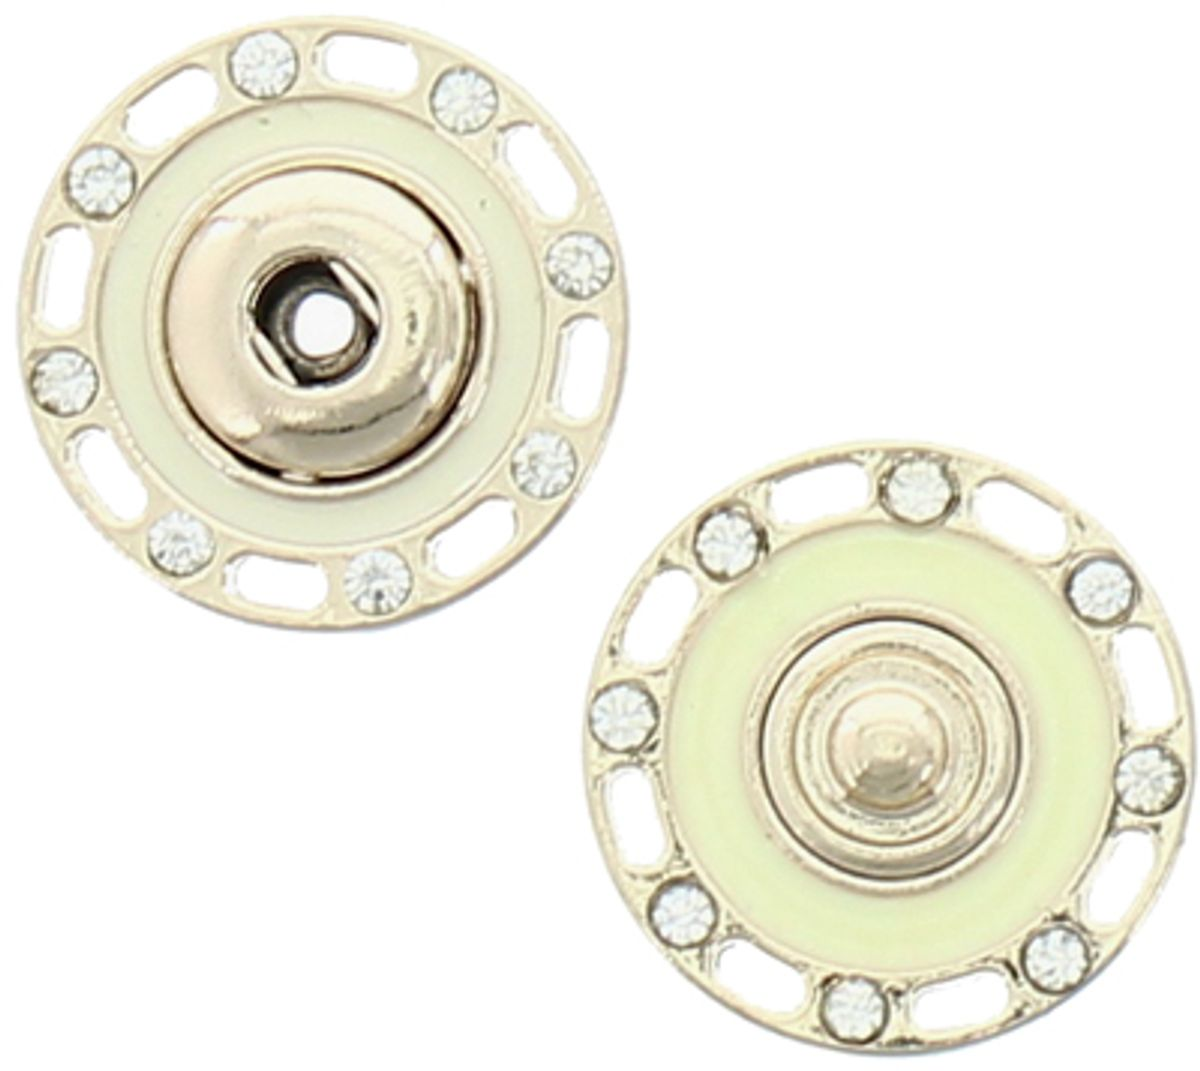 Bouton pression strass - Or et ivoire